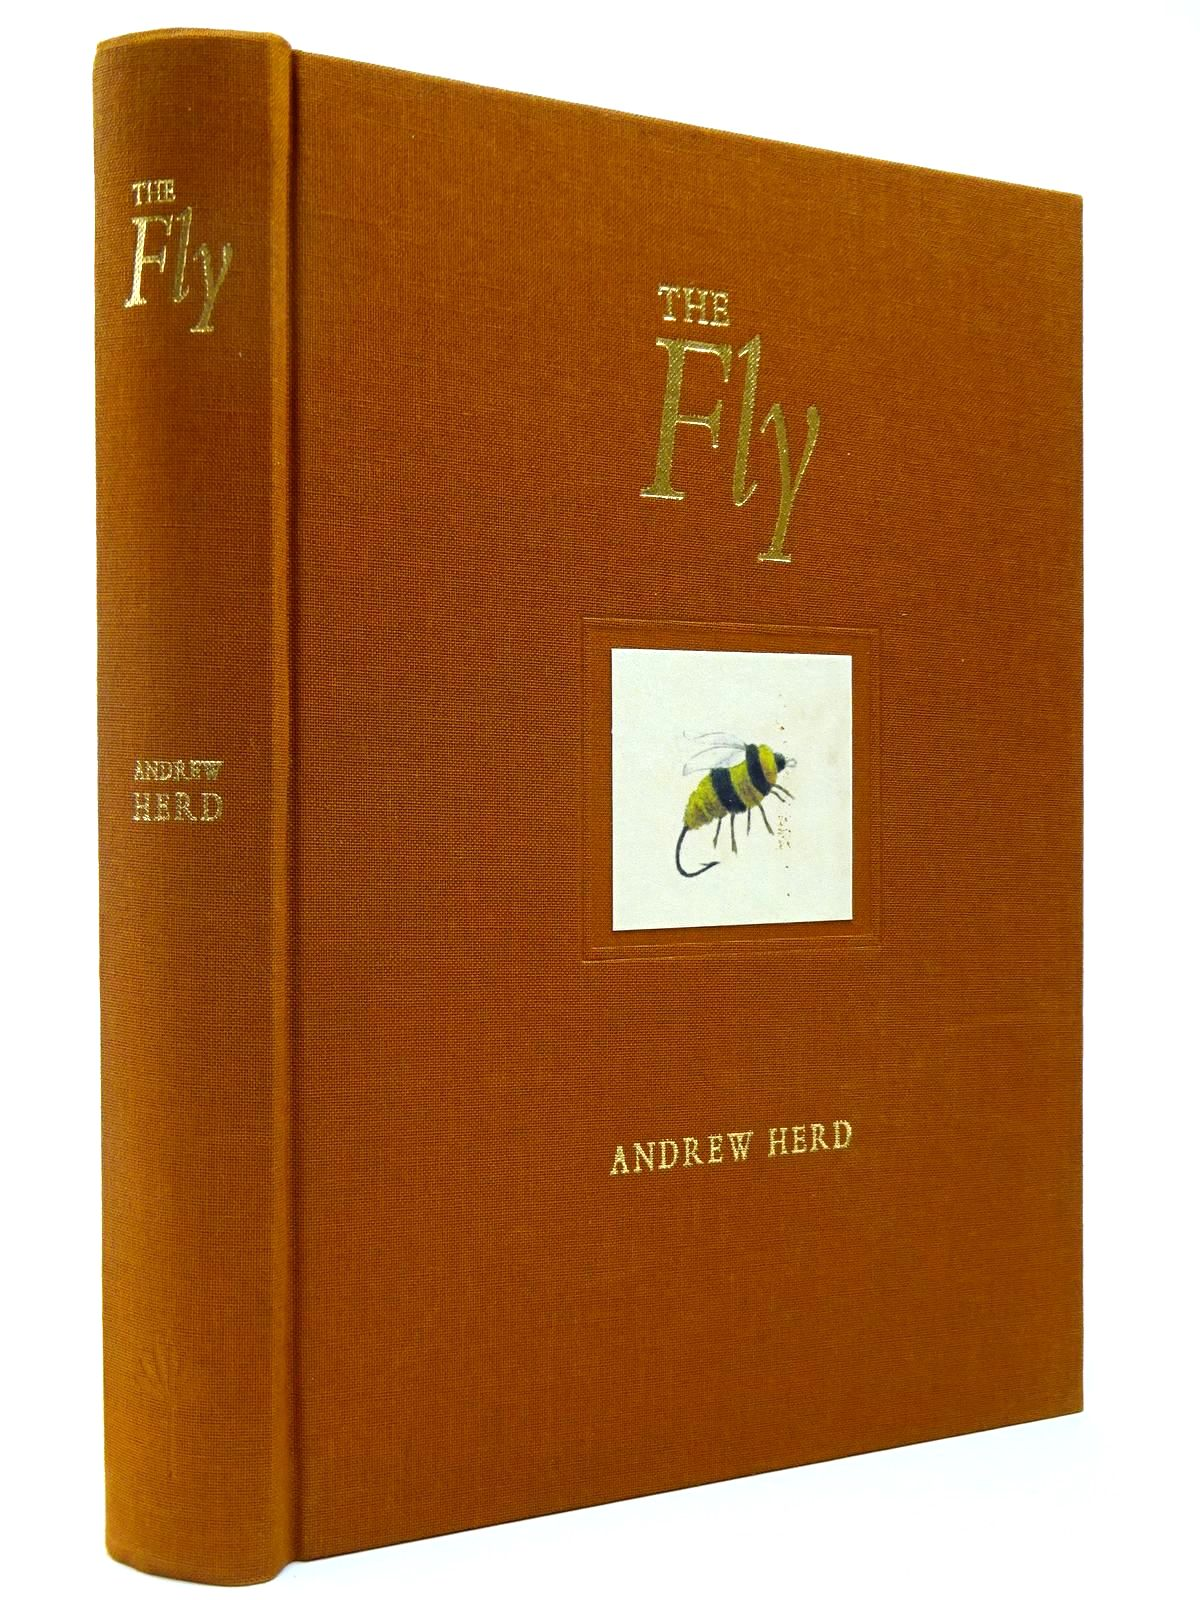 Photo of THE FLY written by Herd, Andrew illustrated by Cook, Paul published by The Medlar Press (STOCK CODE: 2129500)  for sale by Stella & Rose's Books